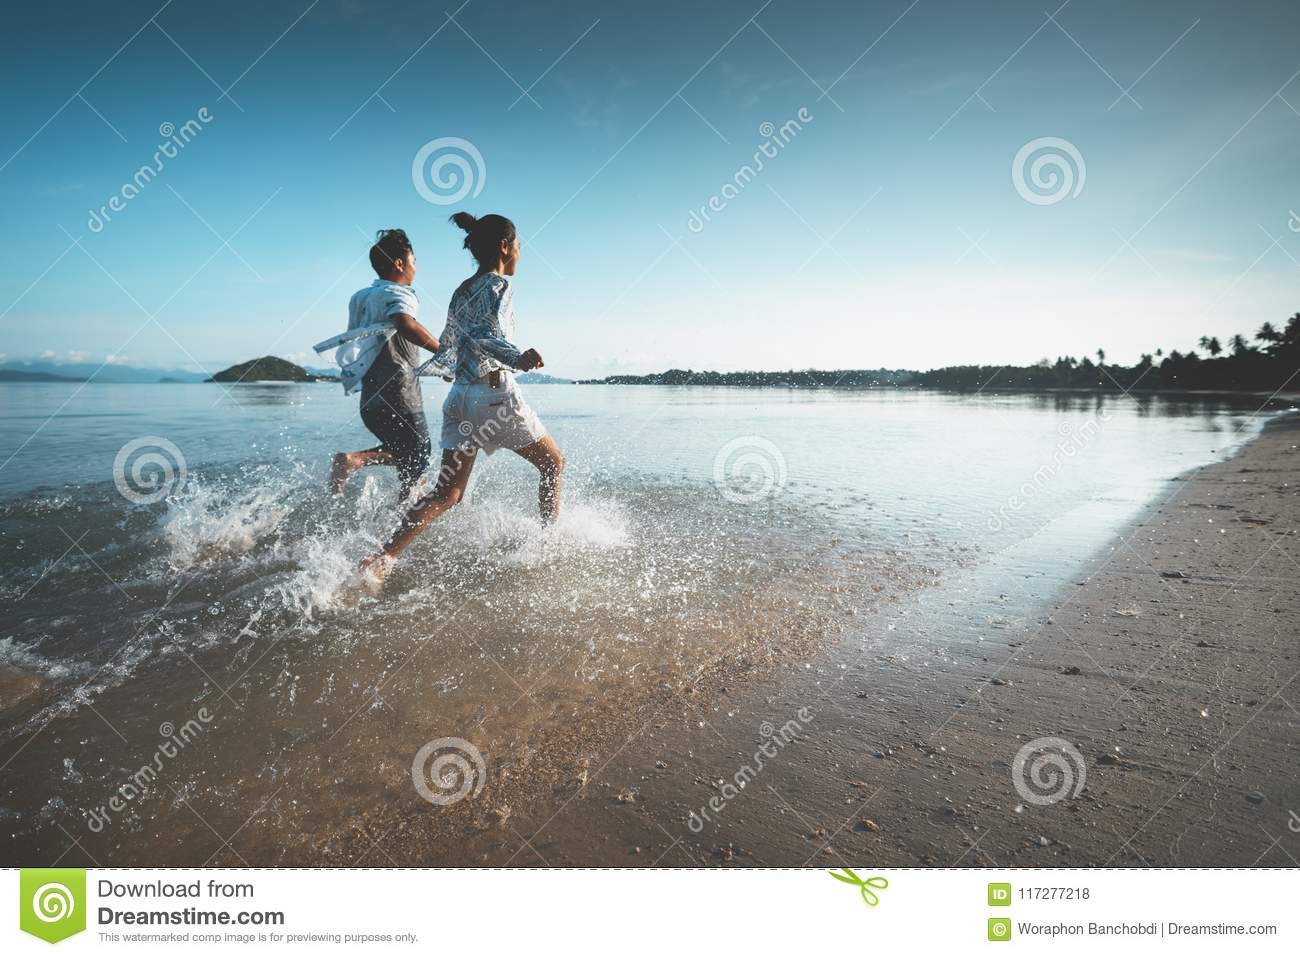 Asian teenage girl and boy running on the beach